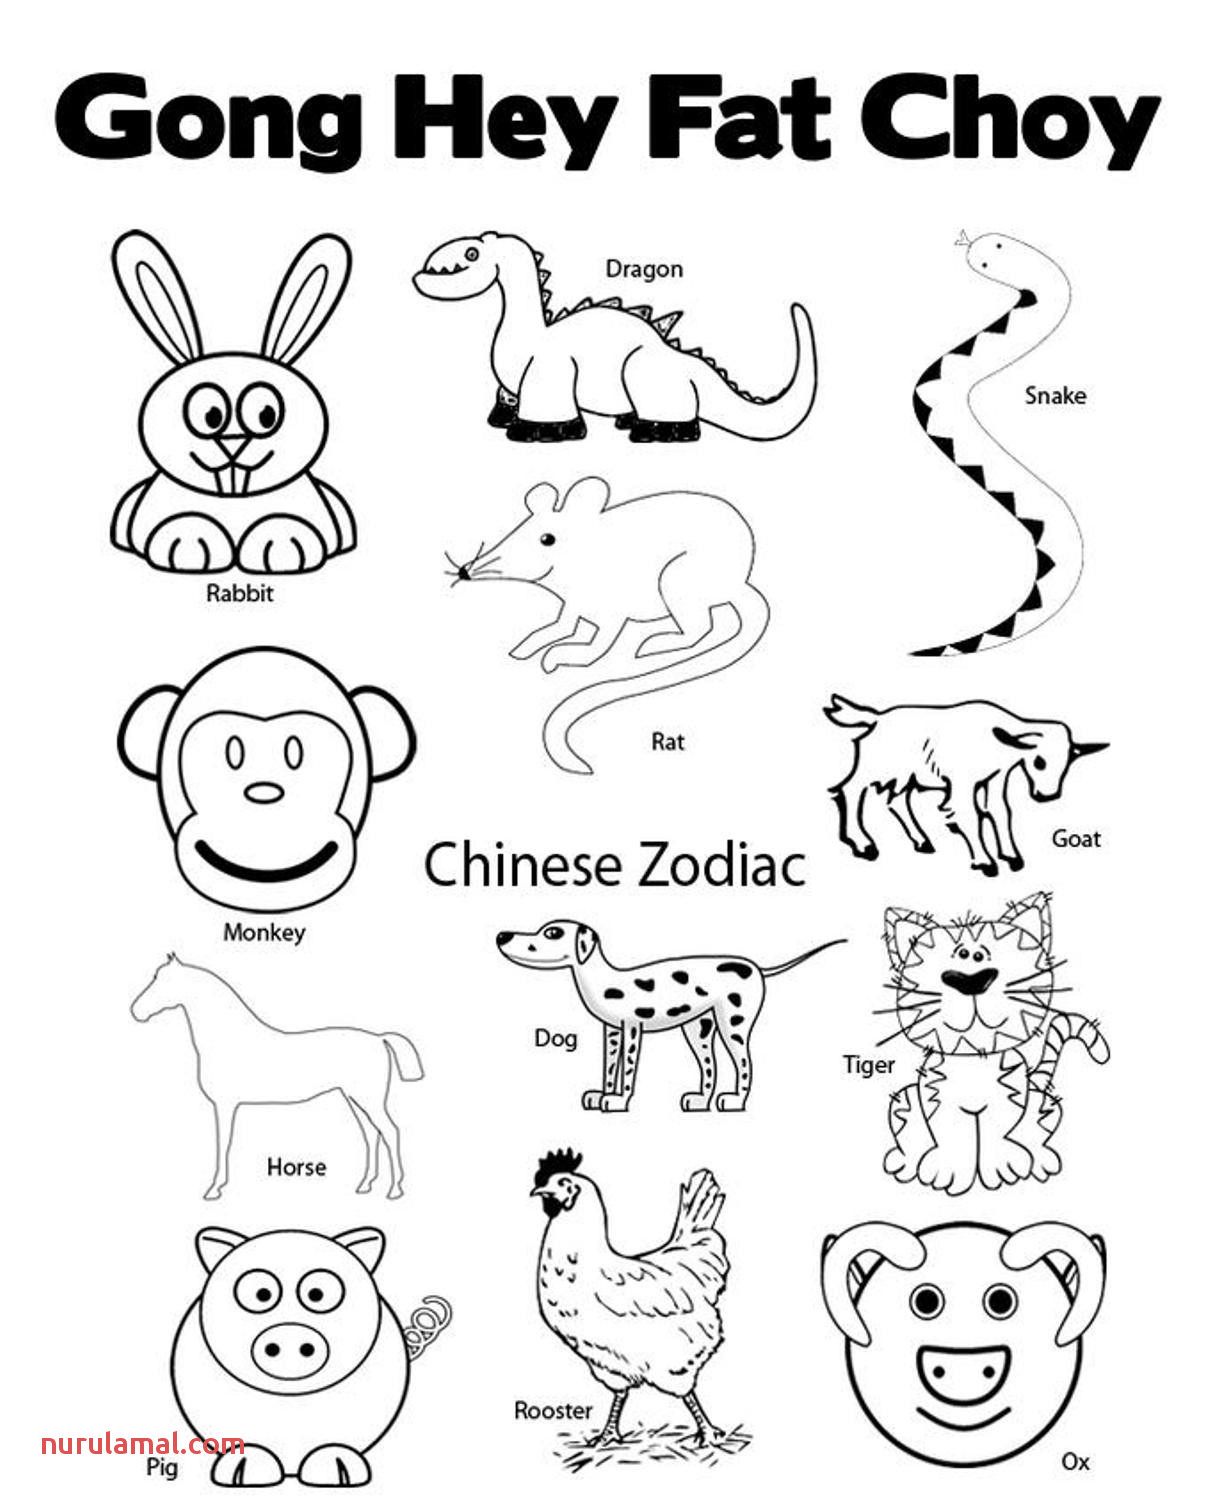 d7c1eae562a5863bc81dcb f210c 28 collection of chinese zodiac sign coloring pages high 1219 1501